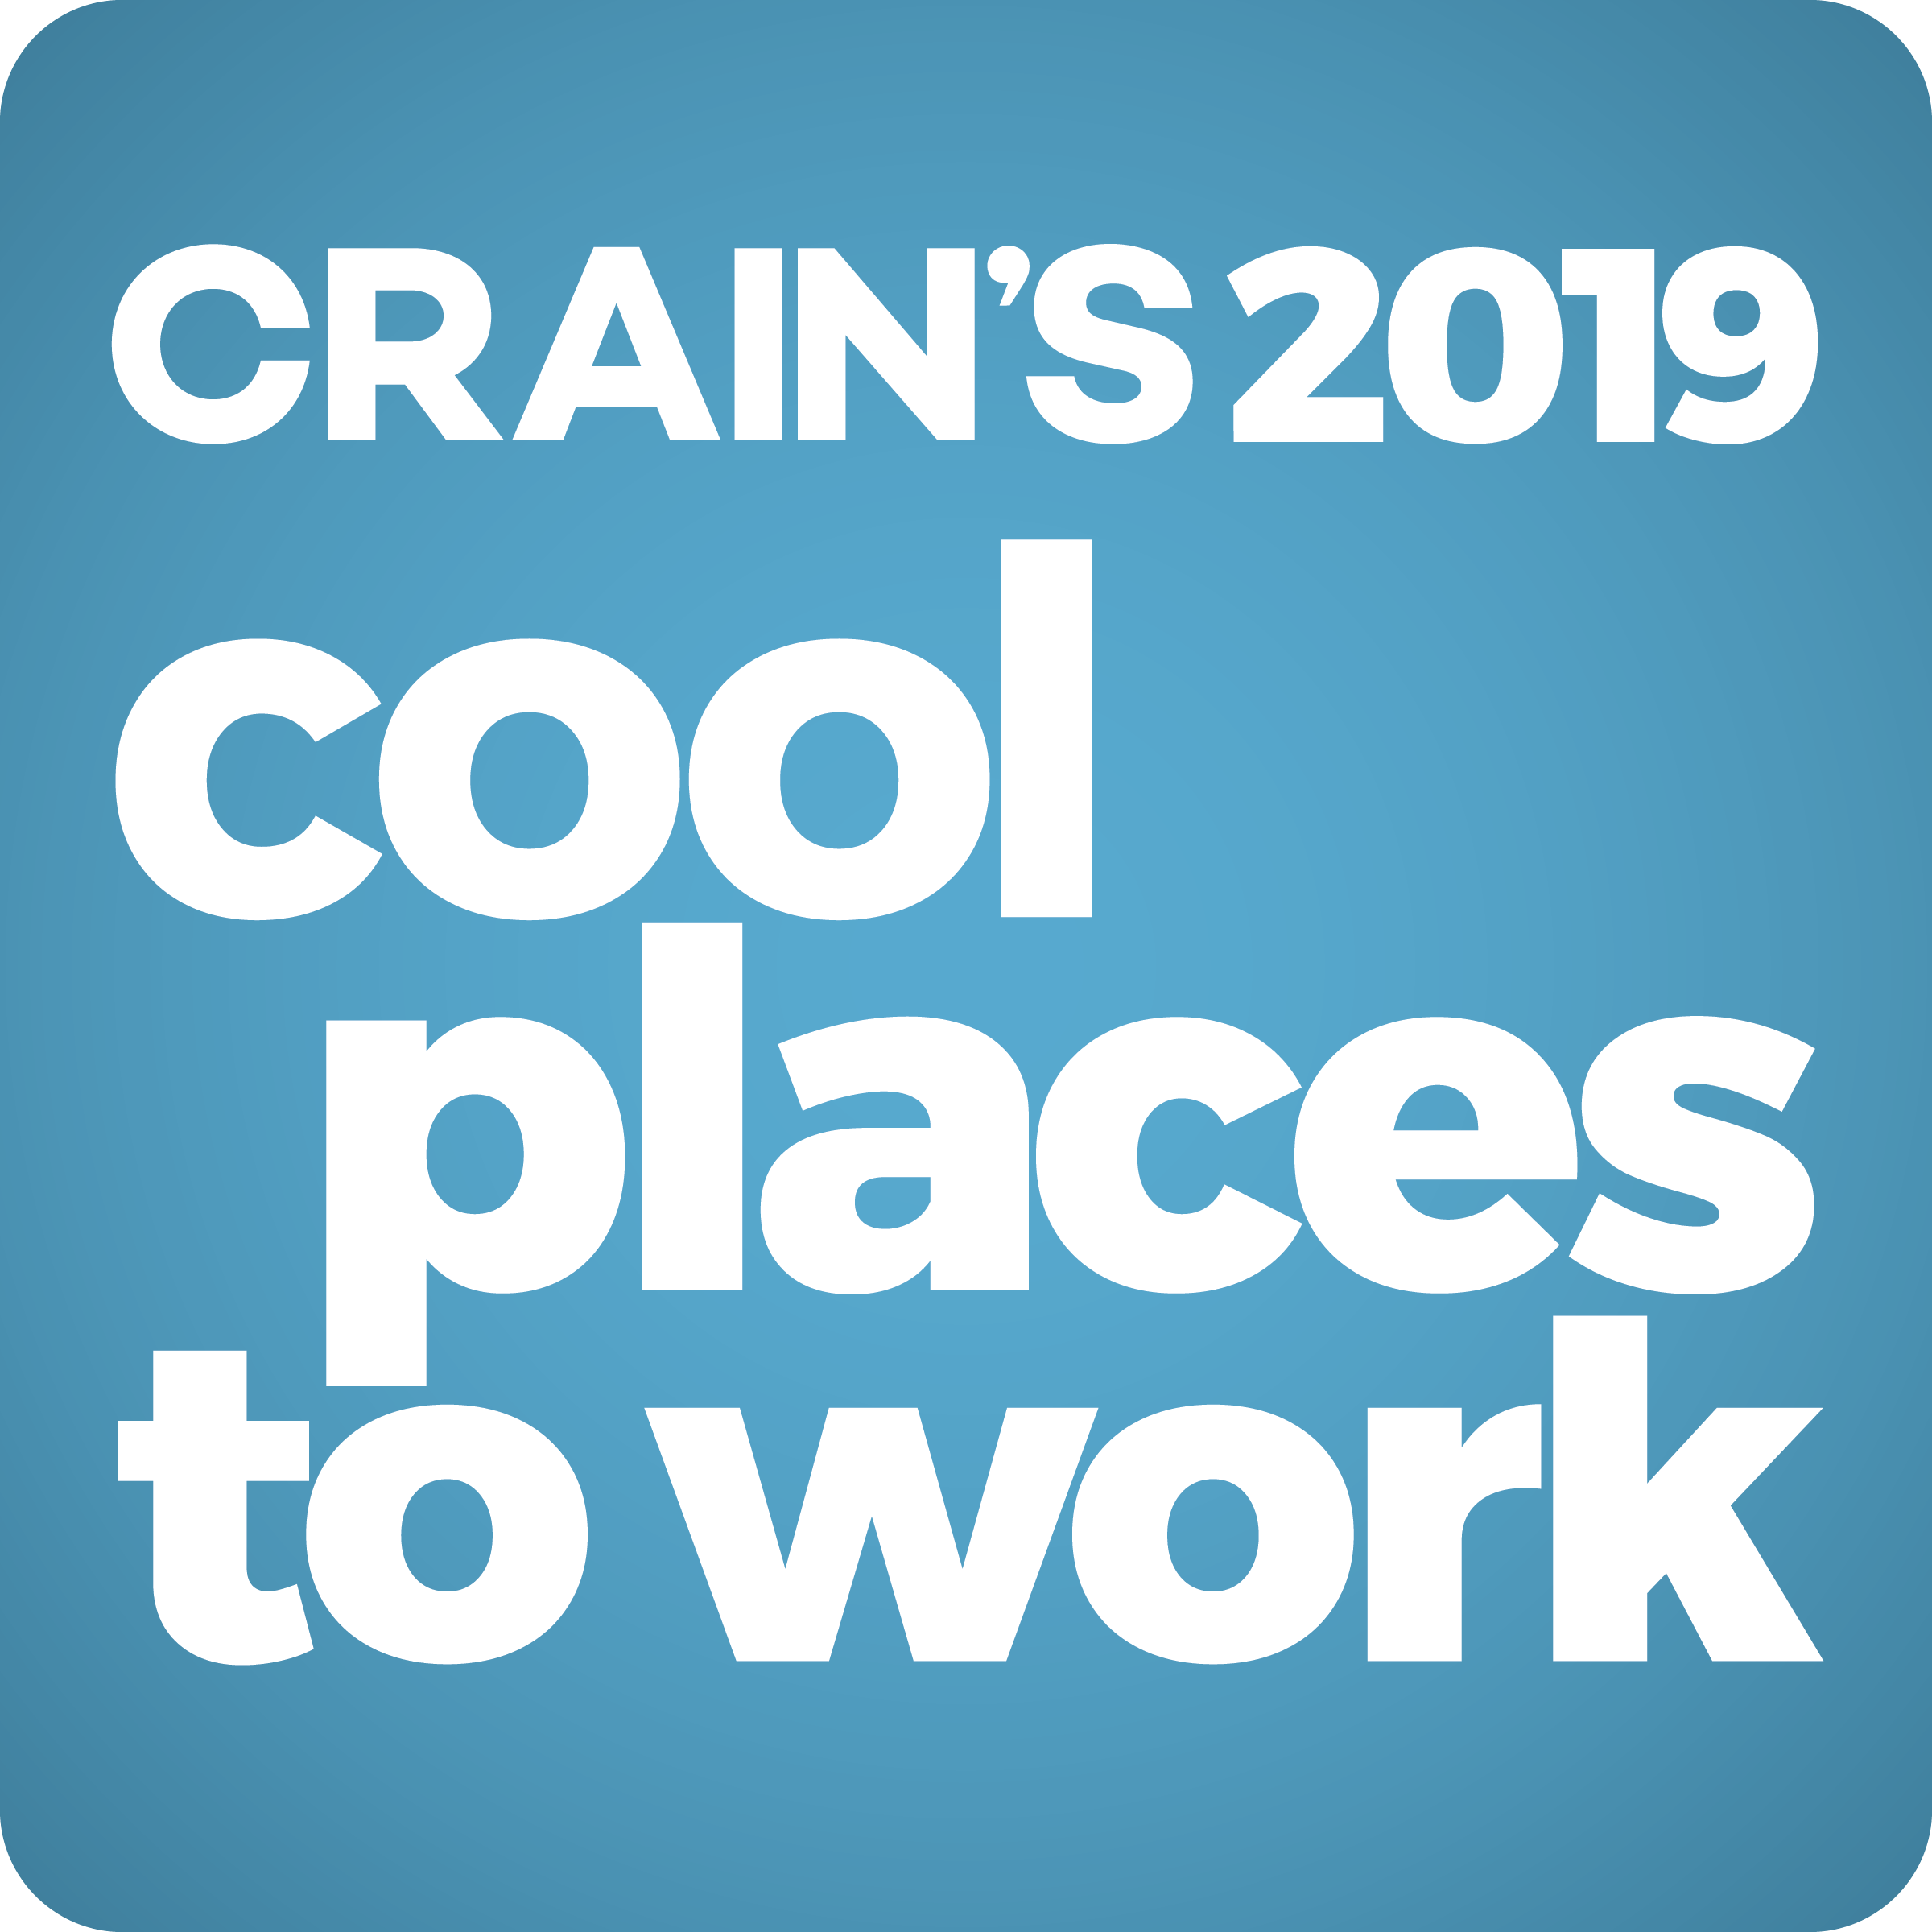 Crains Cool Places Winner